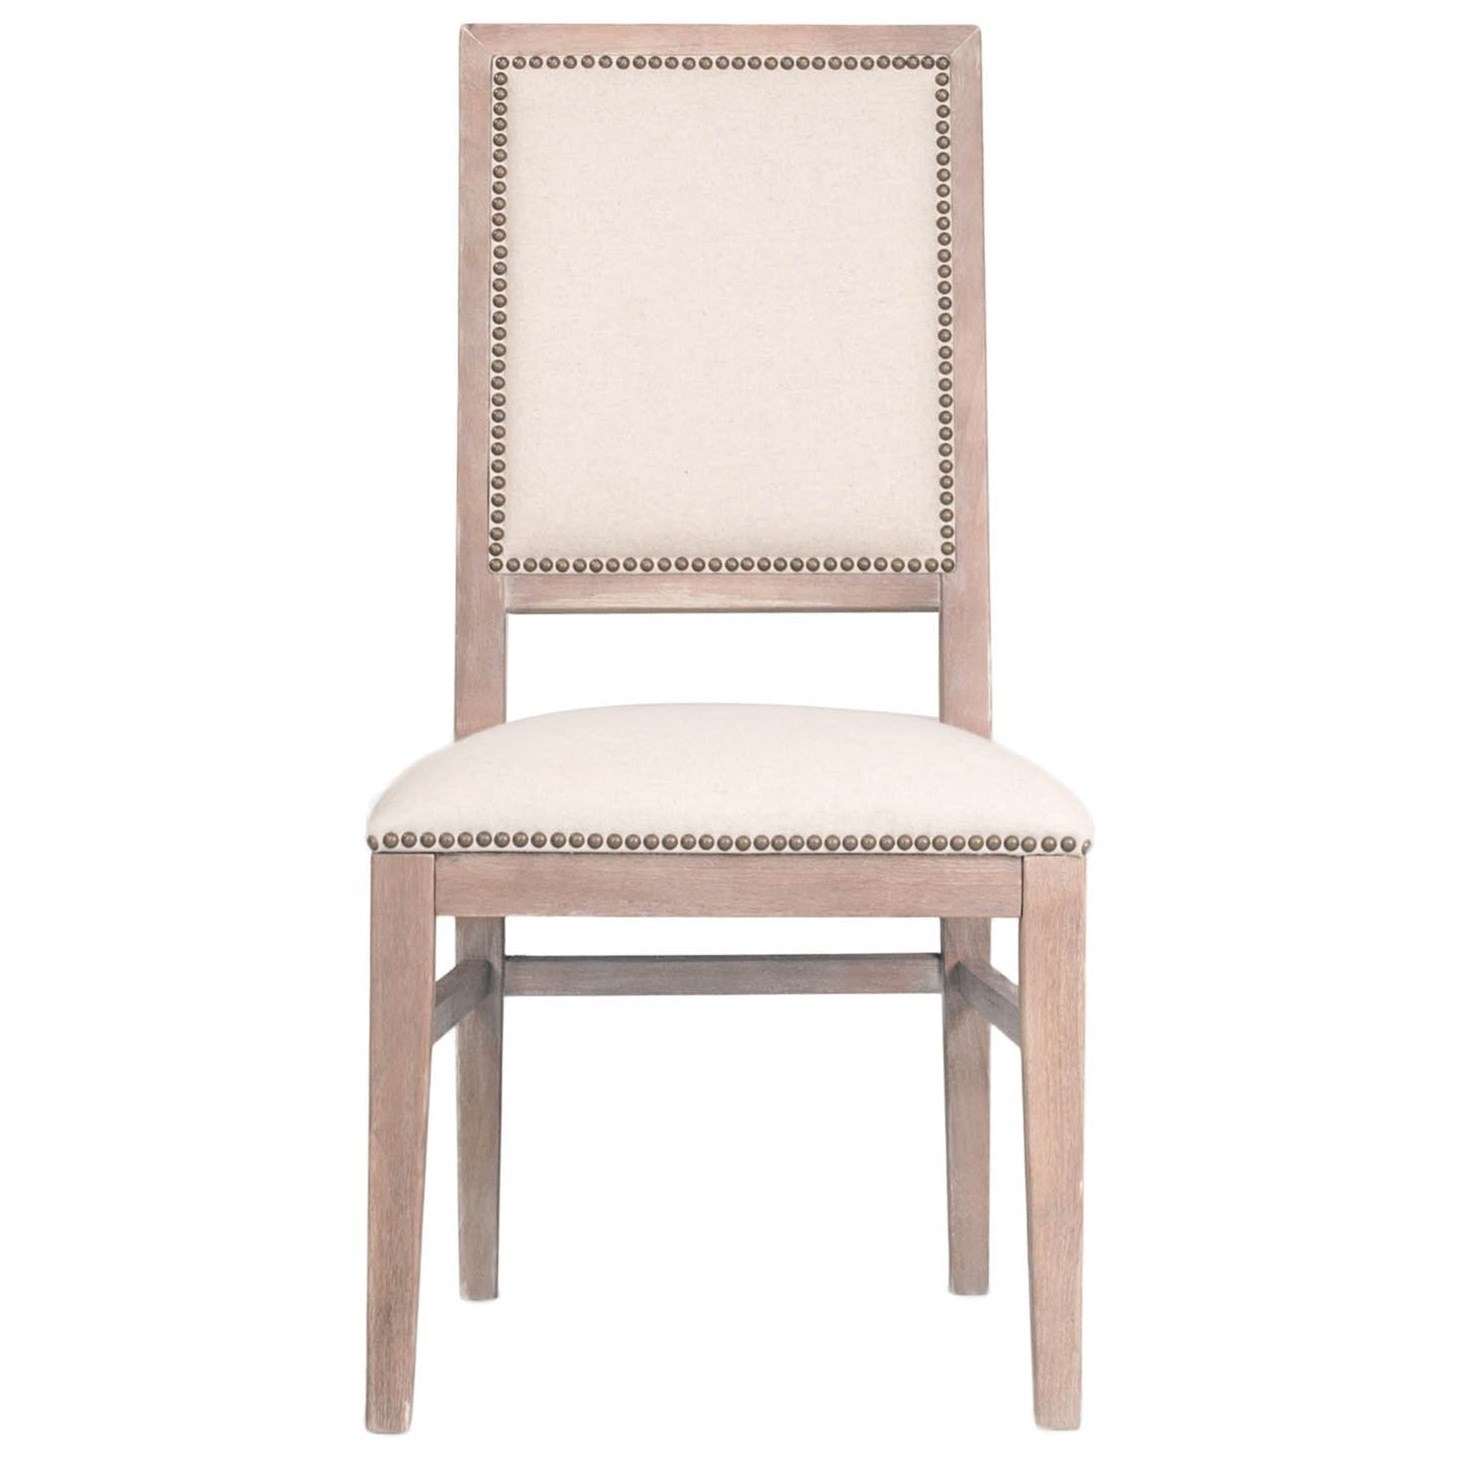 Traditions Dexter Dining Chair Set by Orient Express Furniture at Baer's Furniture